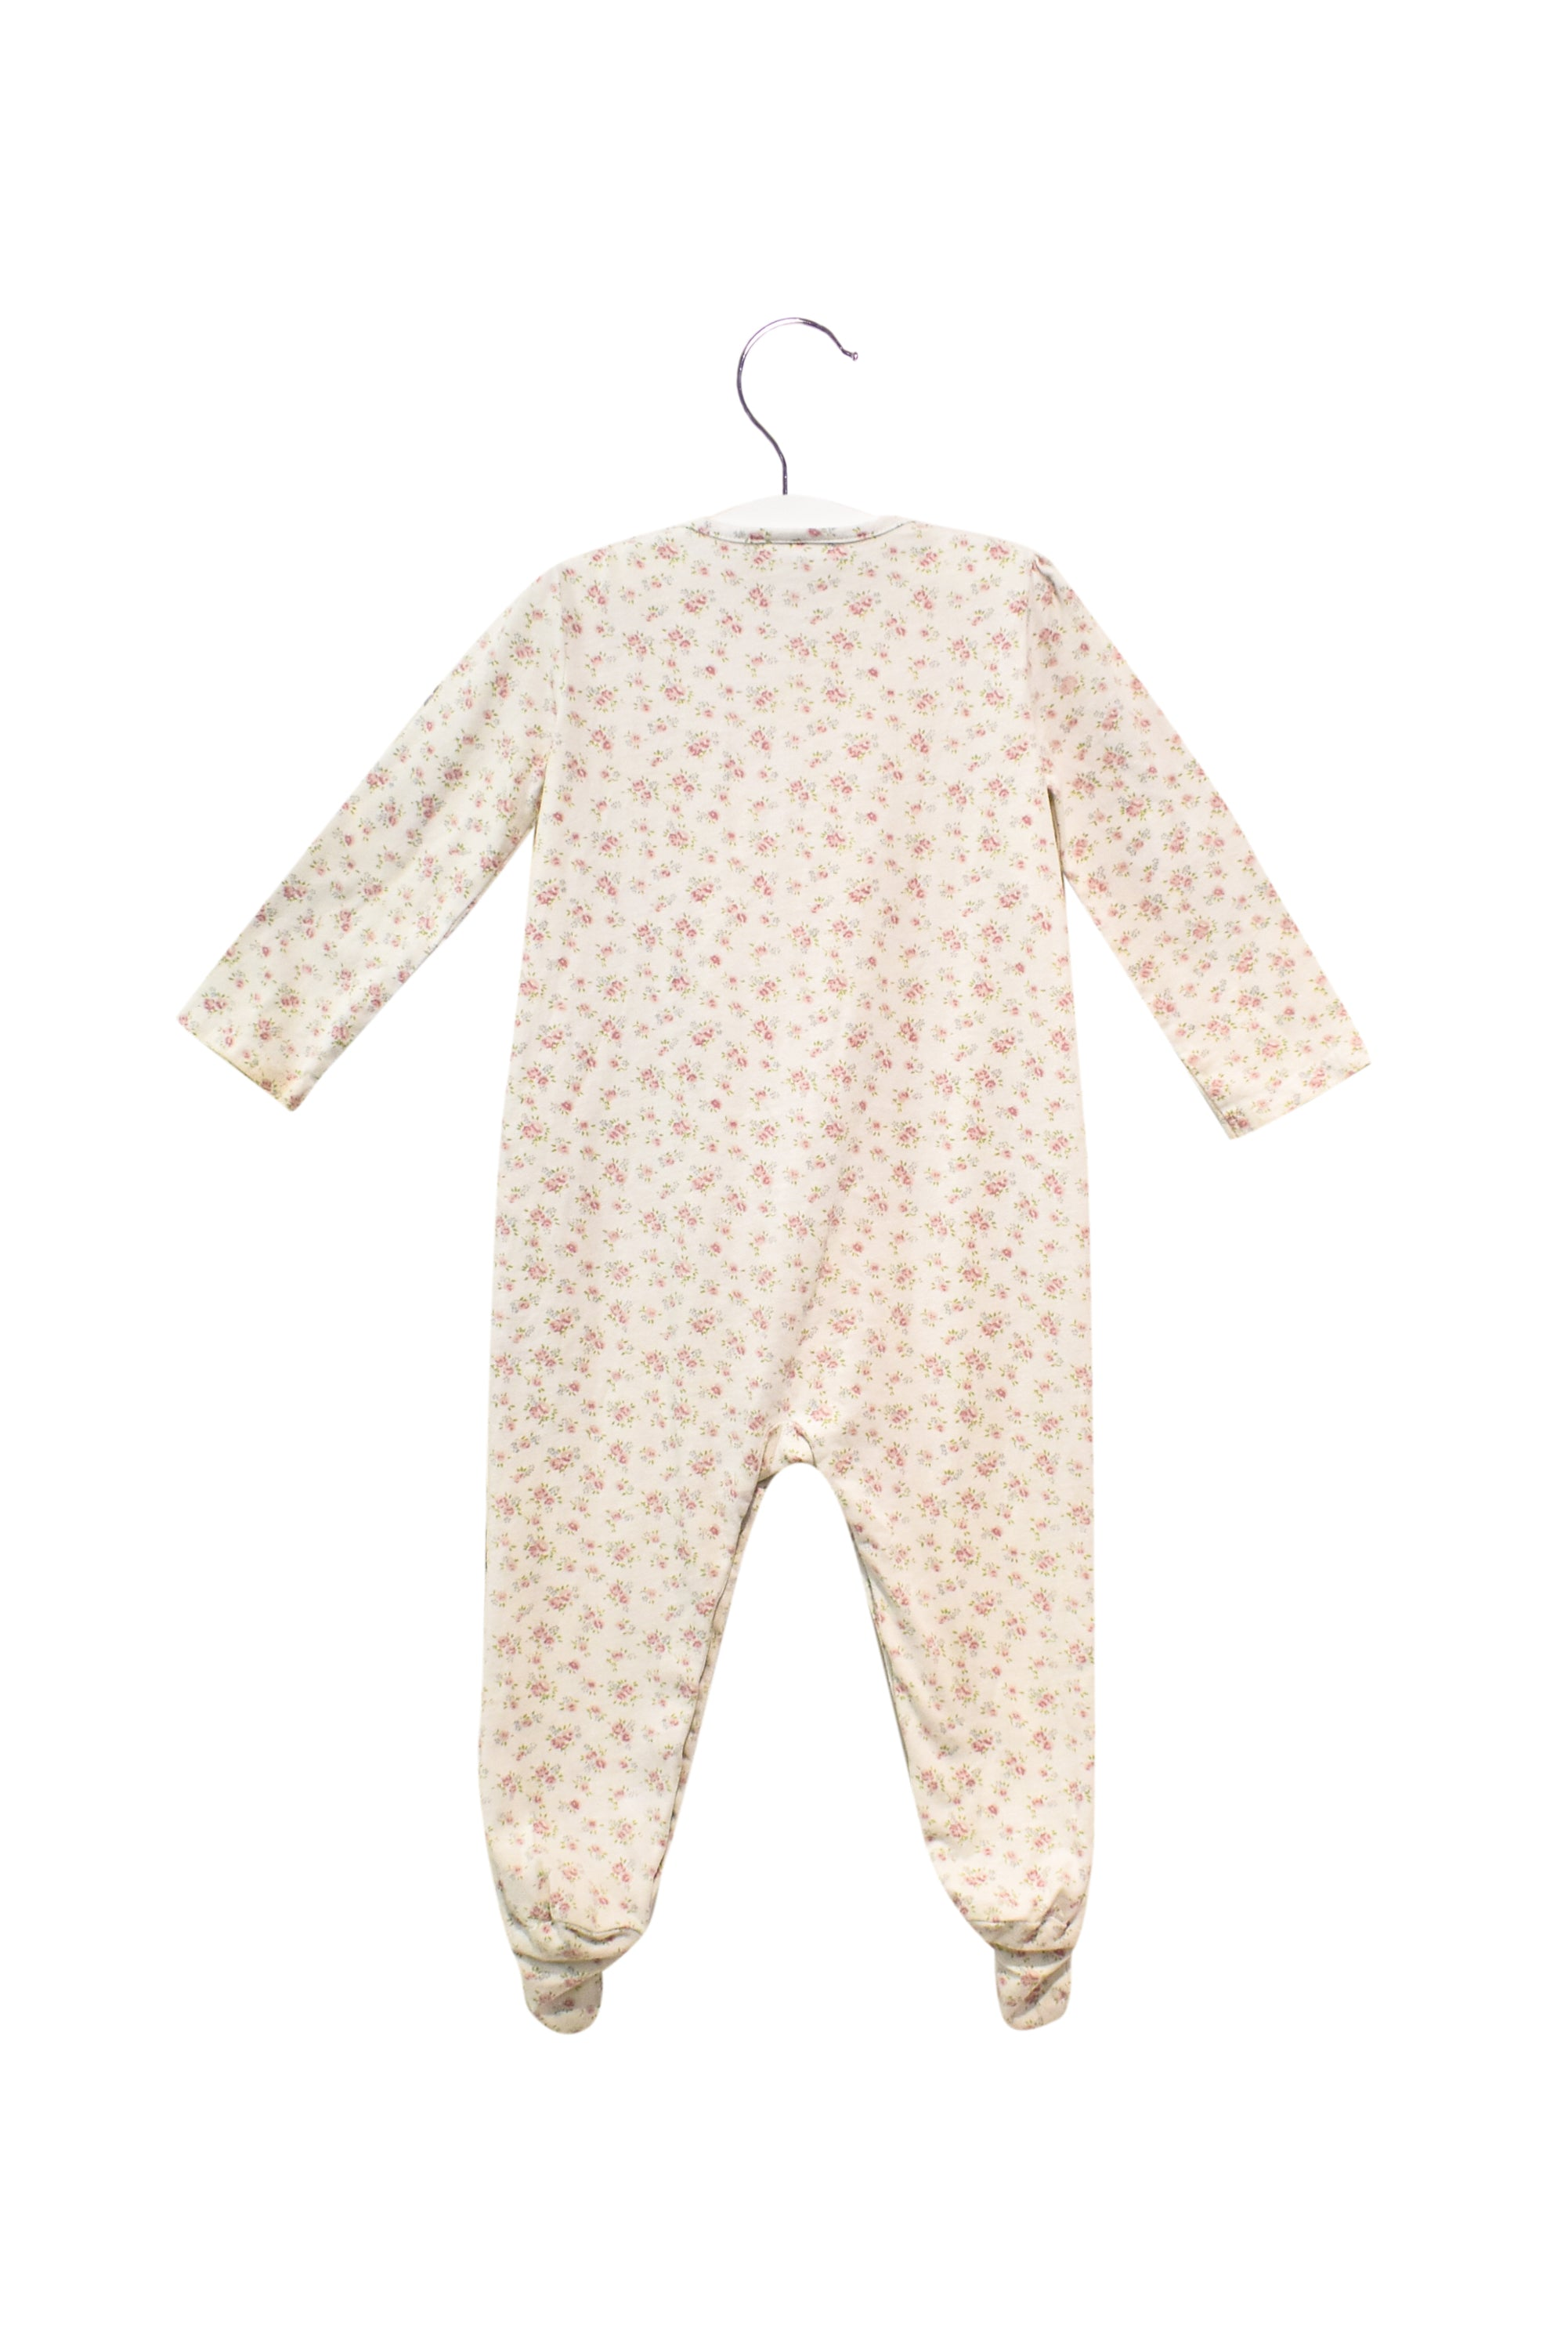 10028139 The Little White Company Baby~Jumpsuit 18-24M at Retykle